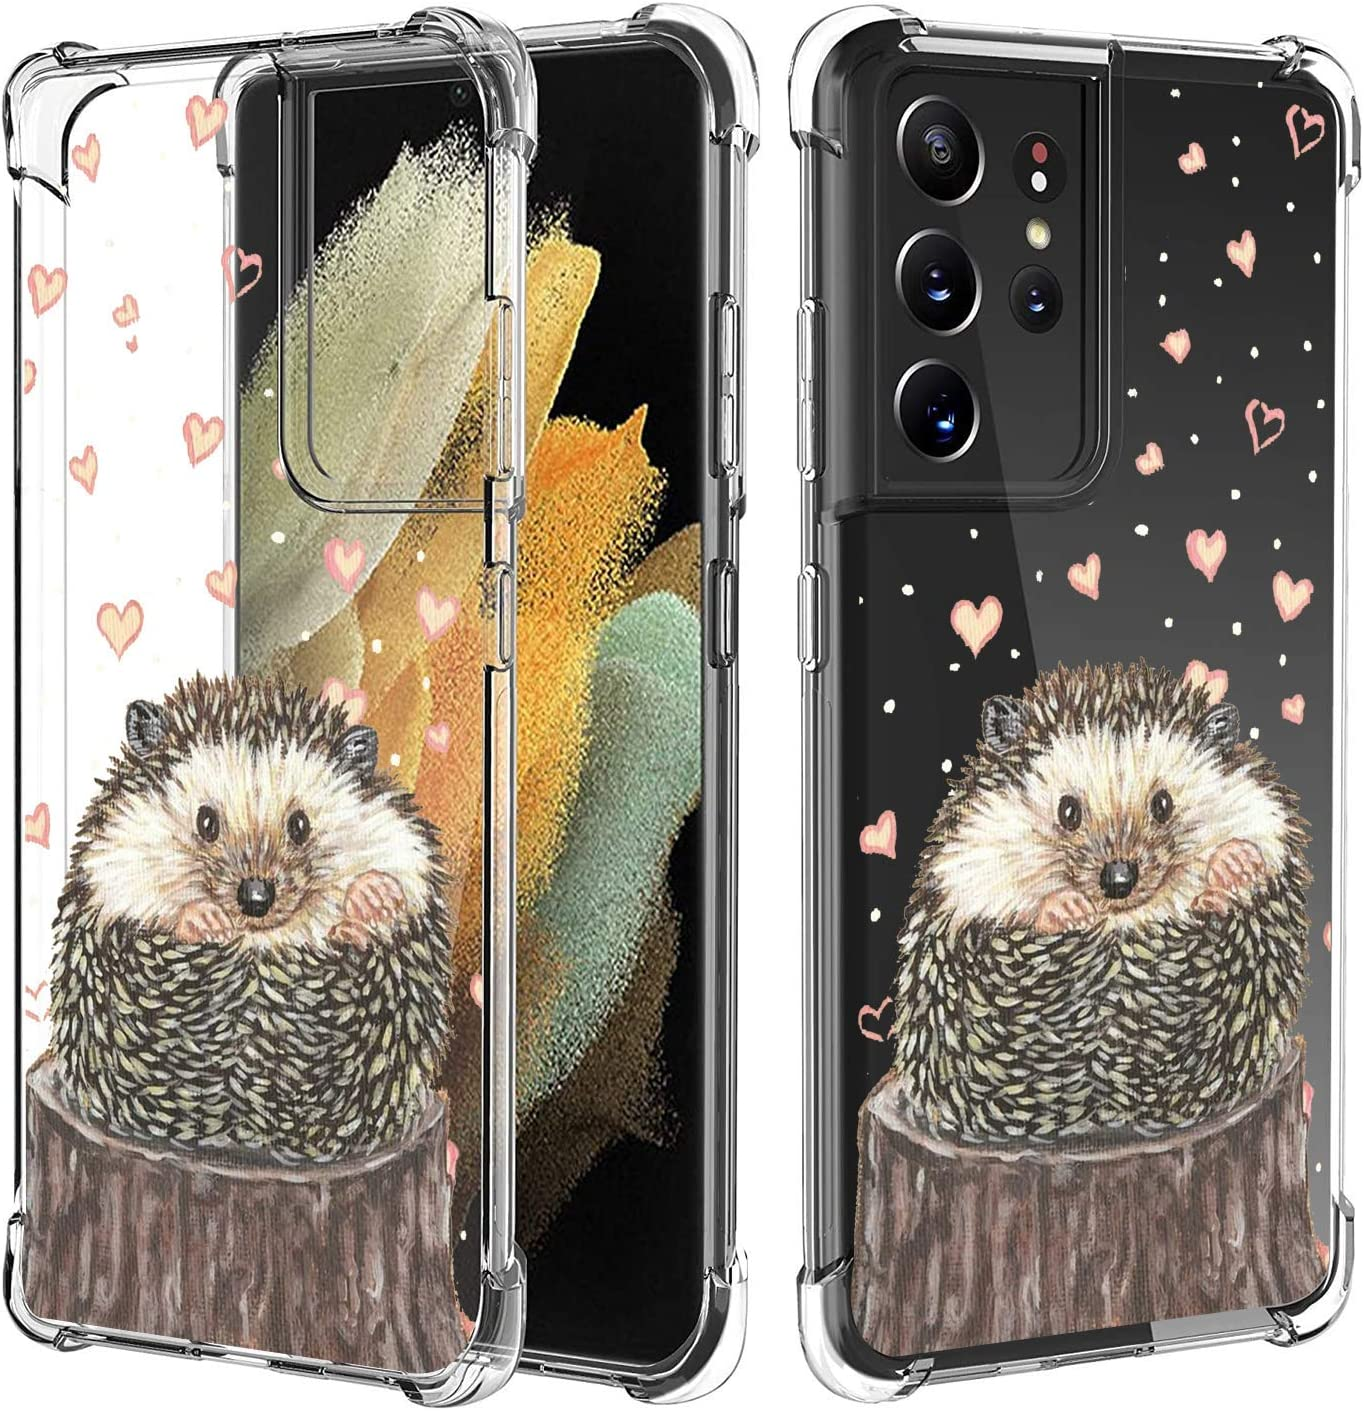 LINPO Case for Samsung Galaxy S21 Ultra 5G Personalized for Men and Women, Clear Four Corner Bumper and Anti-Slip Hard PC Back Soft Silicone TPU Case for Samsung Galaxy S21 Ultra 5G-Lovely Hedgehog